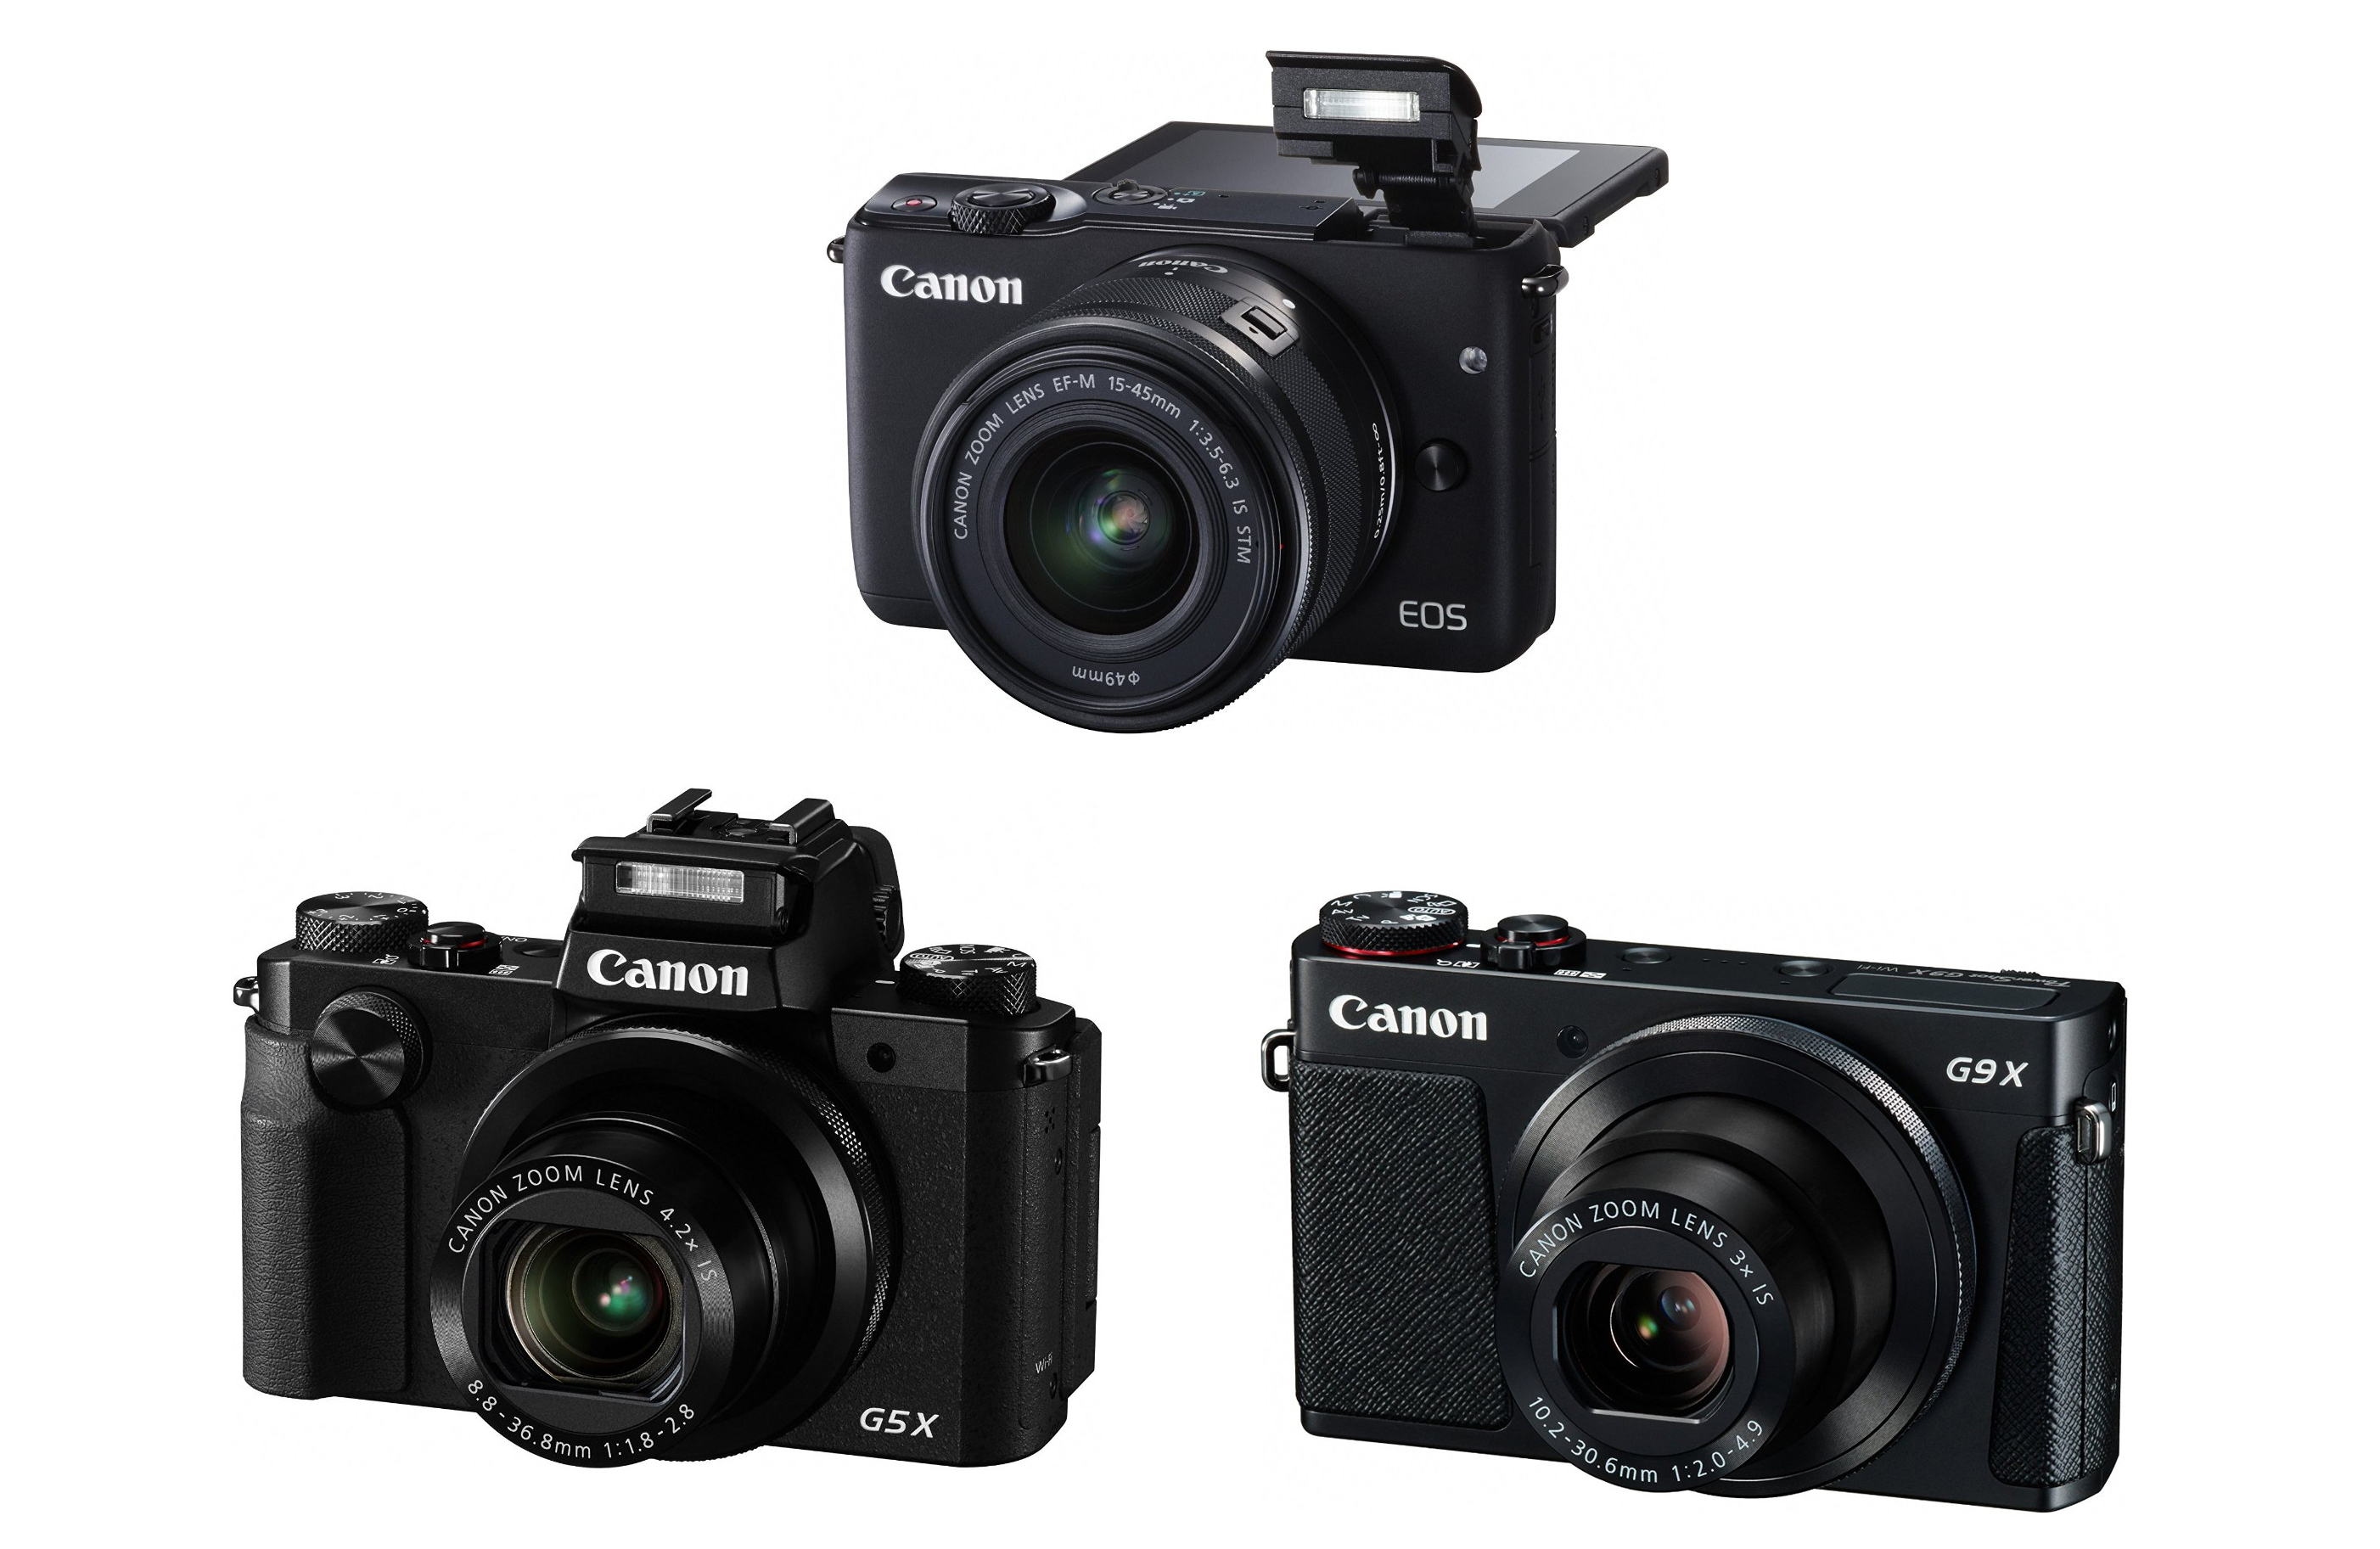 canon eos m10 camera news at cameraegg. Black Bedroom Furniture Sets. Home Design Ideas